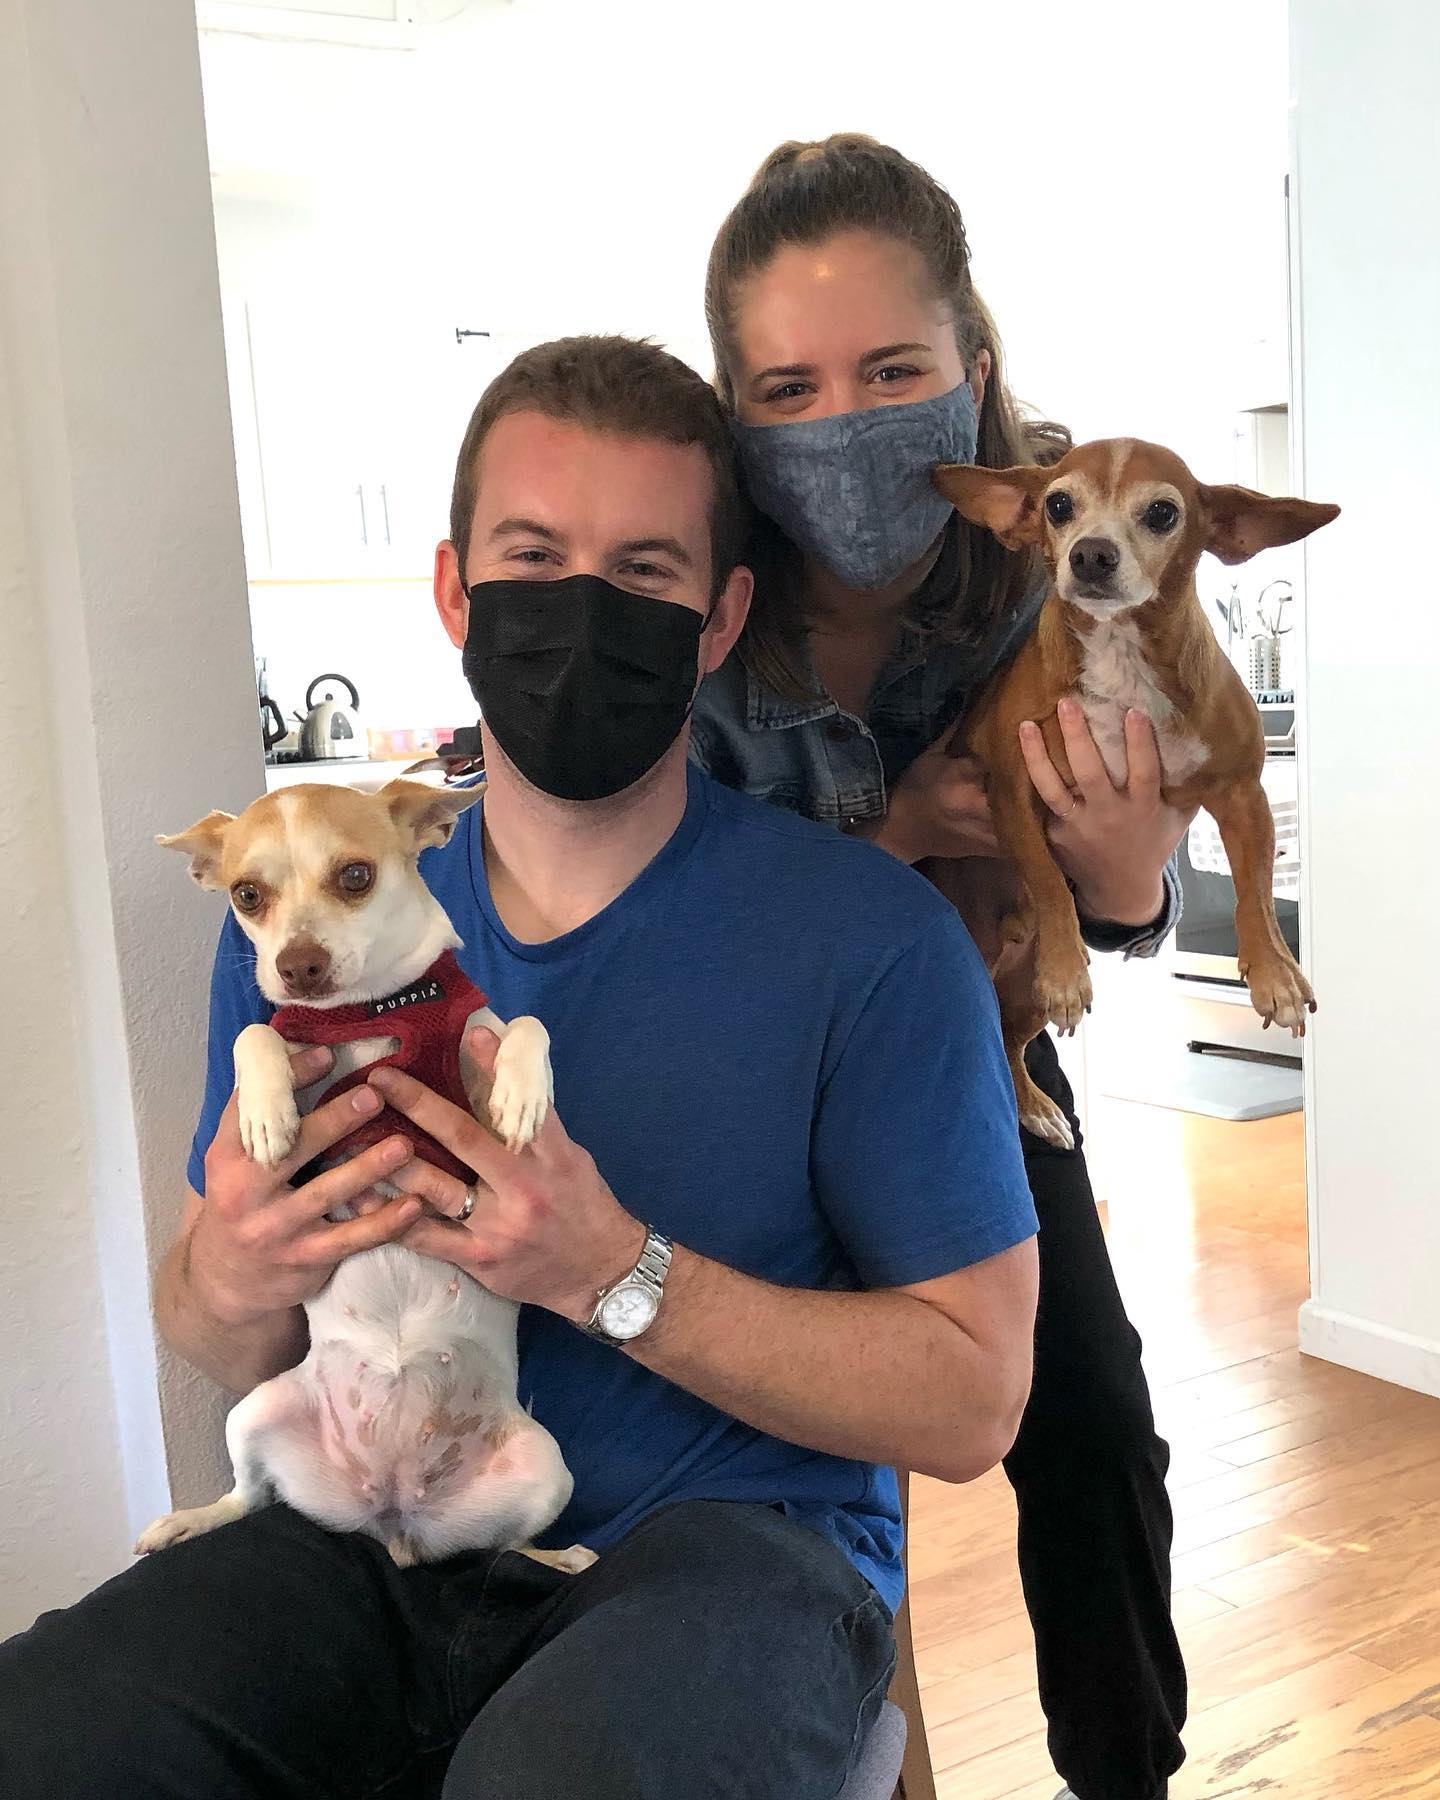 Birdie fit right into this Dawg Squad family It's great when our adopters come back for seconds!